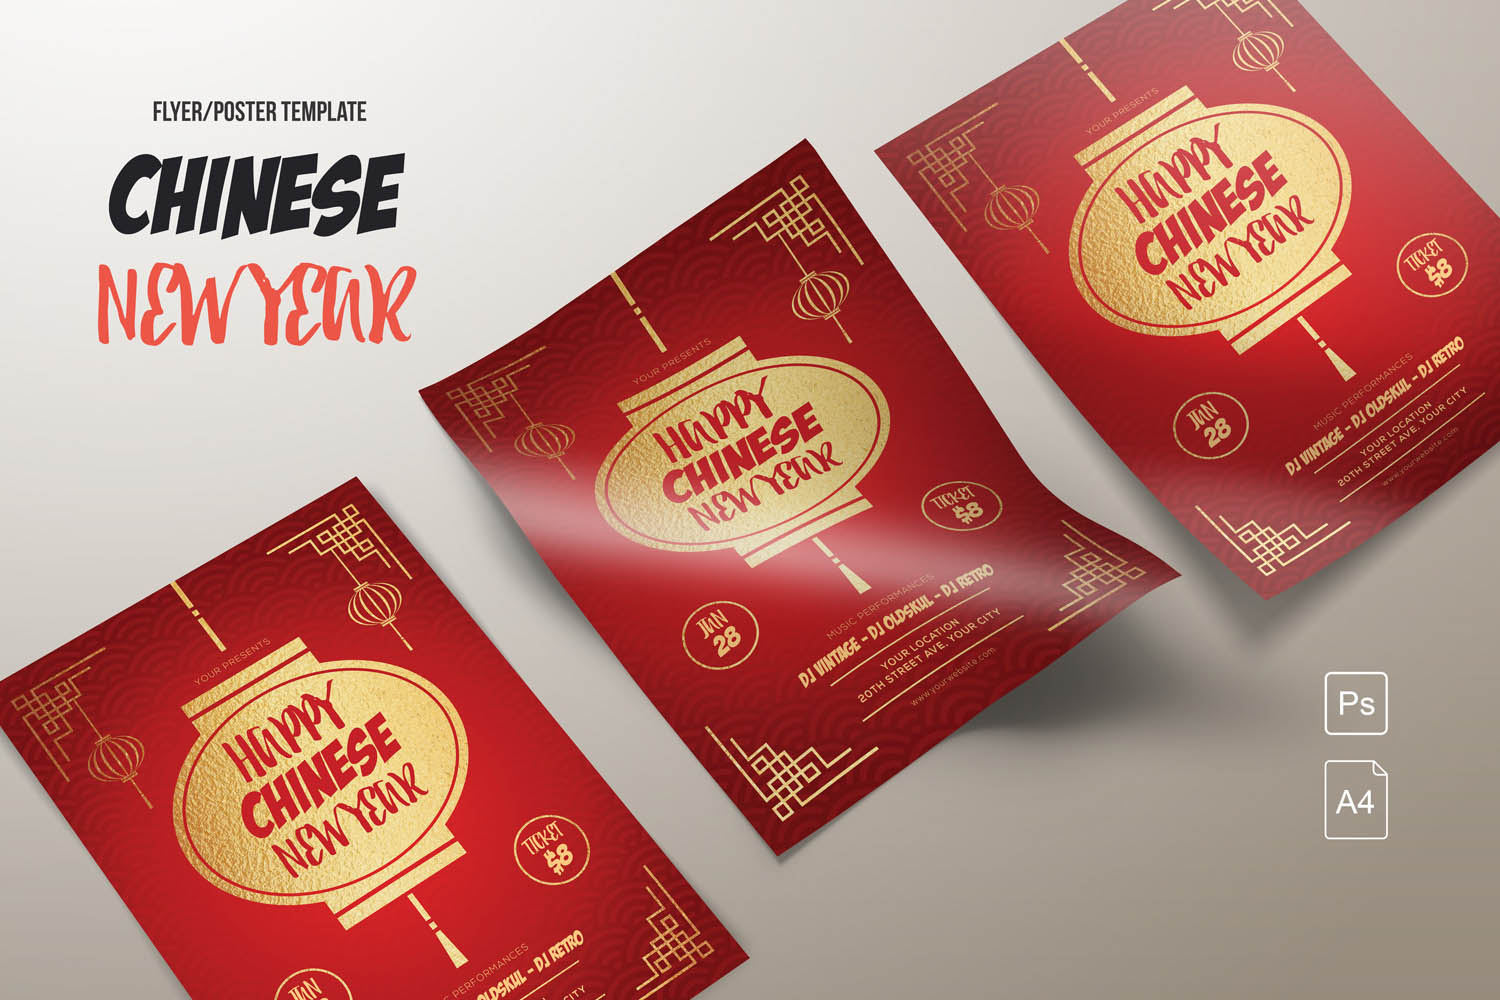 Chinese New Year Flyers example image 1